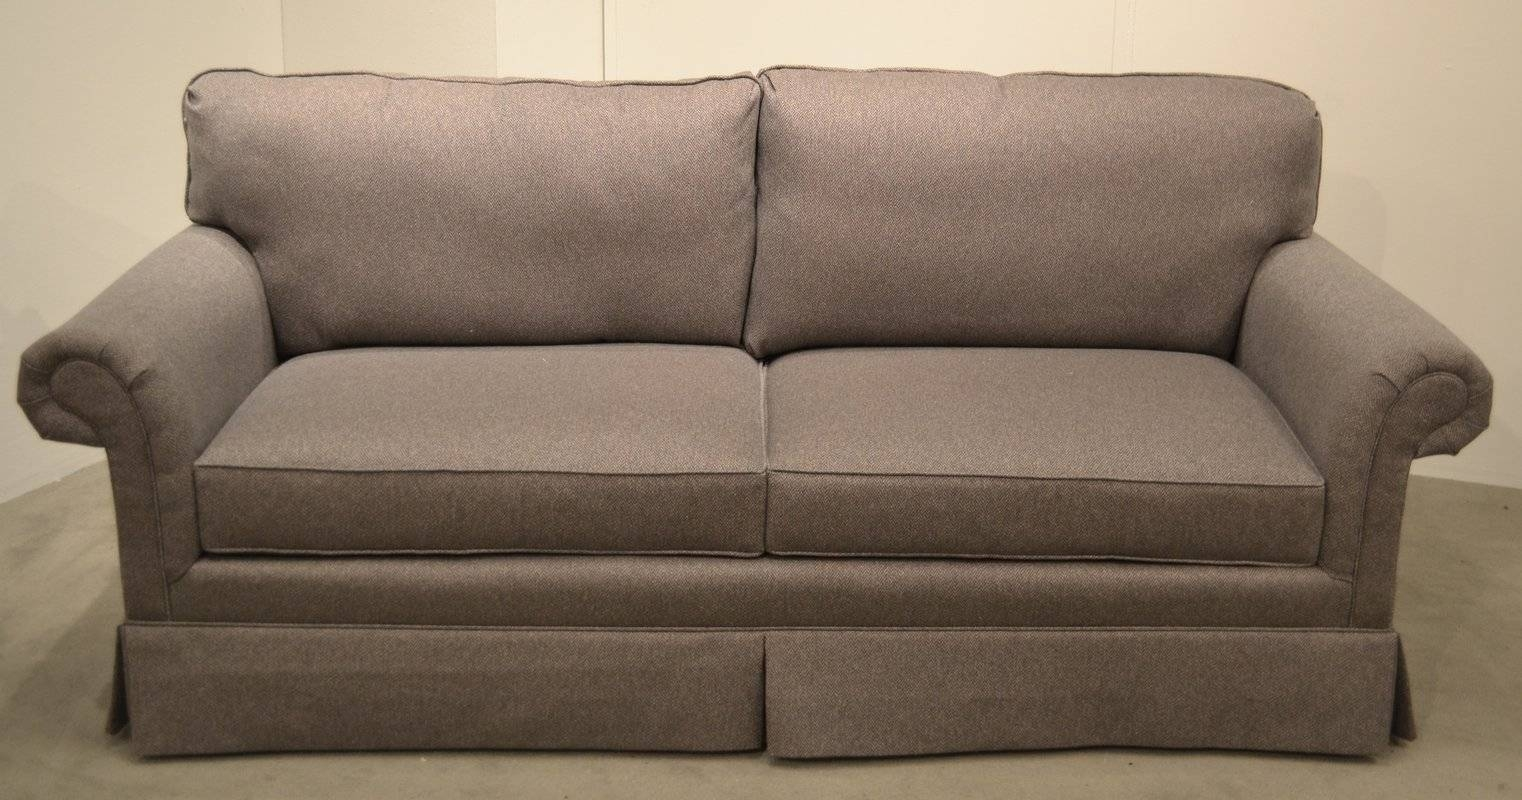 Carolina Classic Furniture Two Cushion Sofa | Wayfair For Cushion Sofa Beds (View 4 of 30)